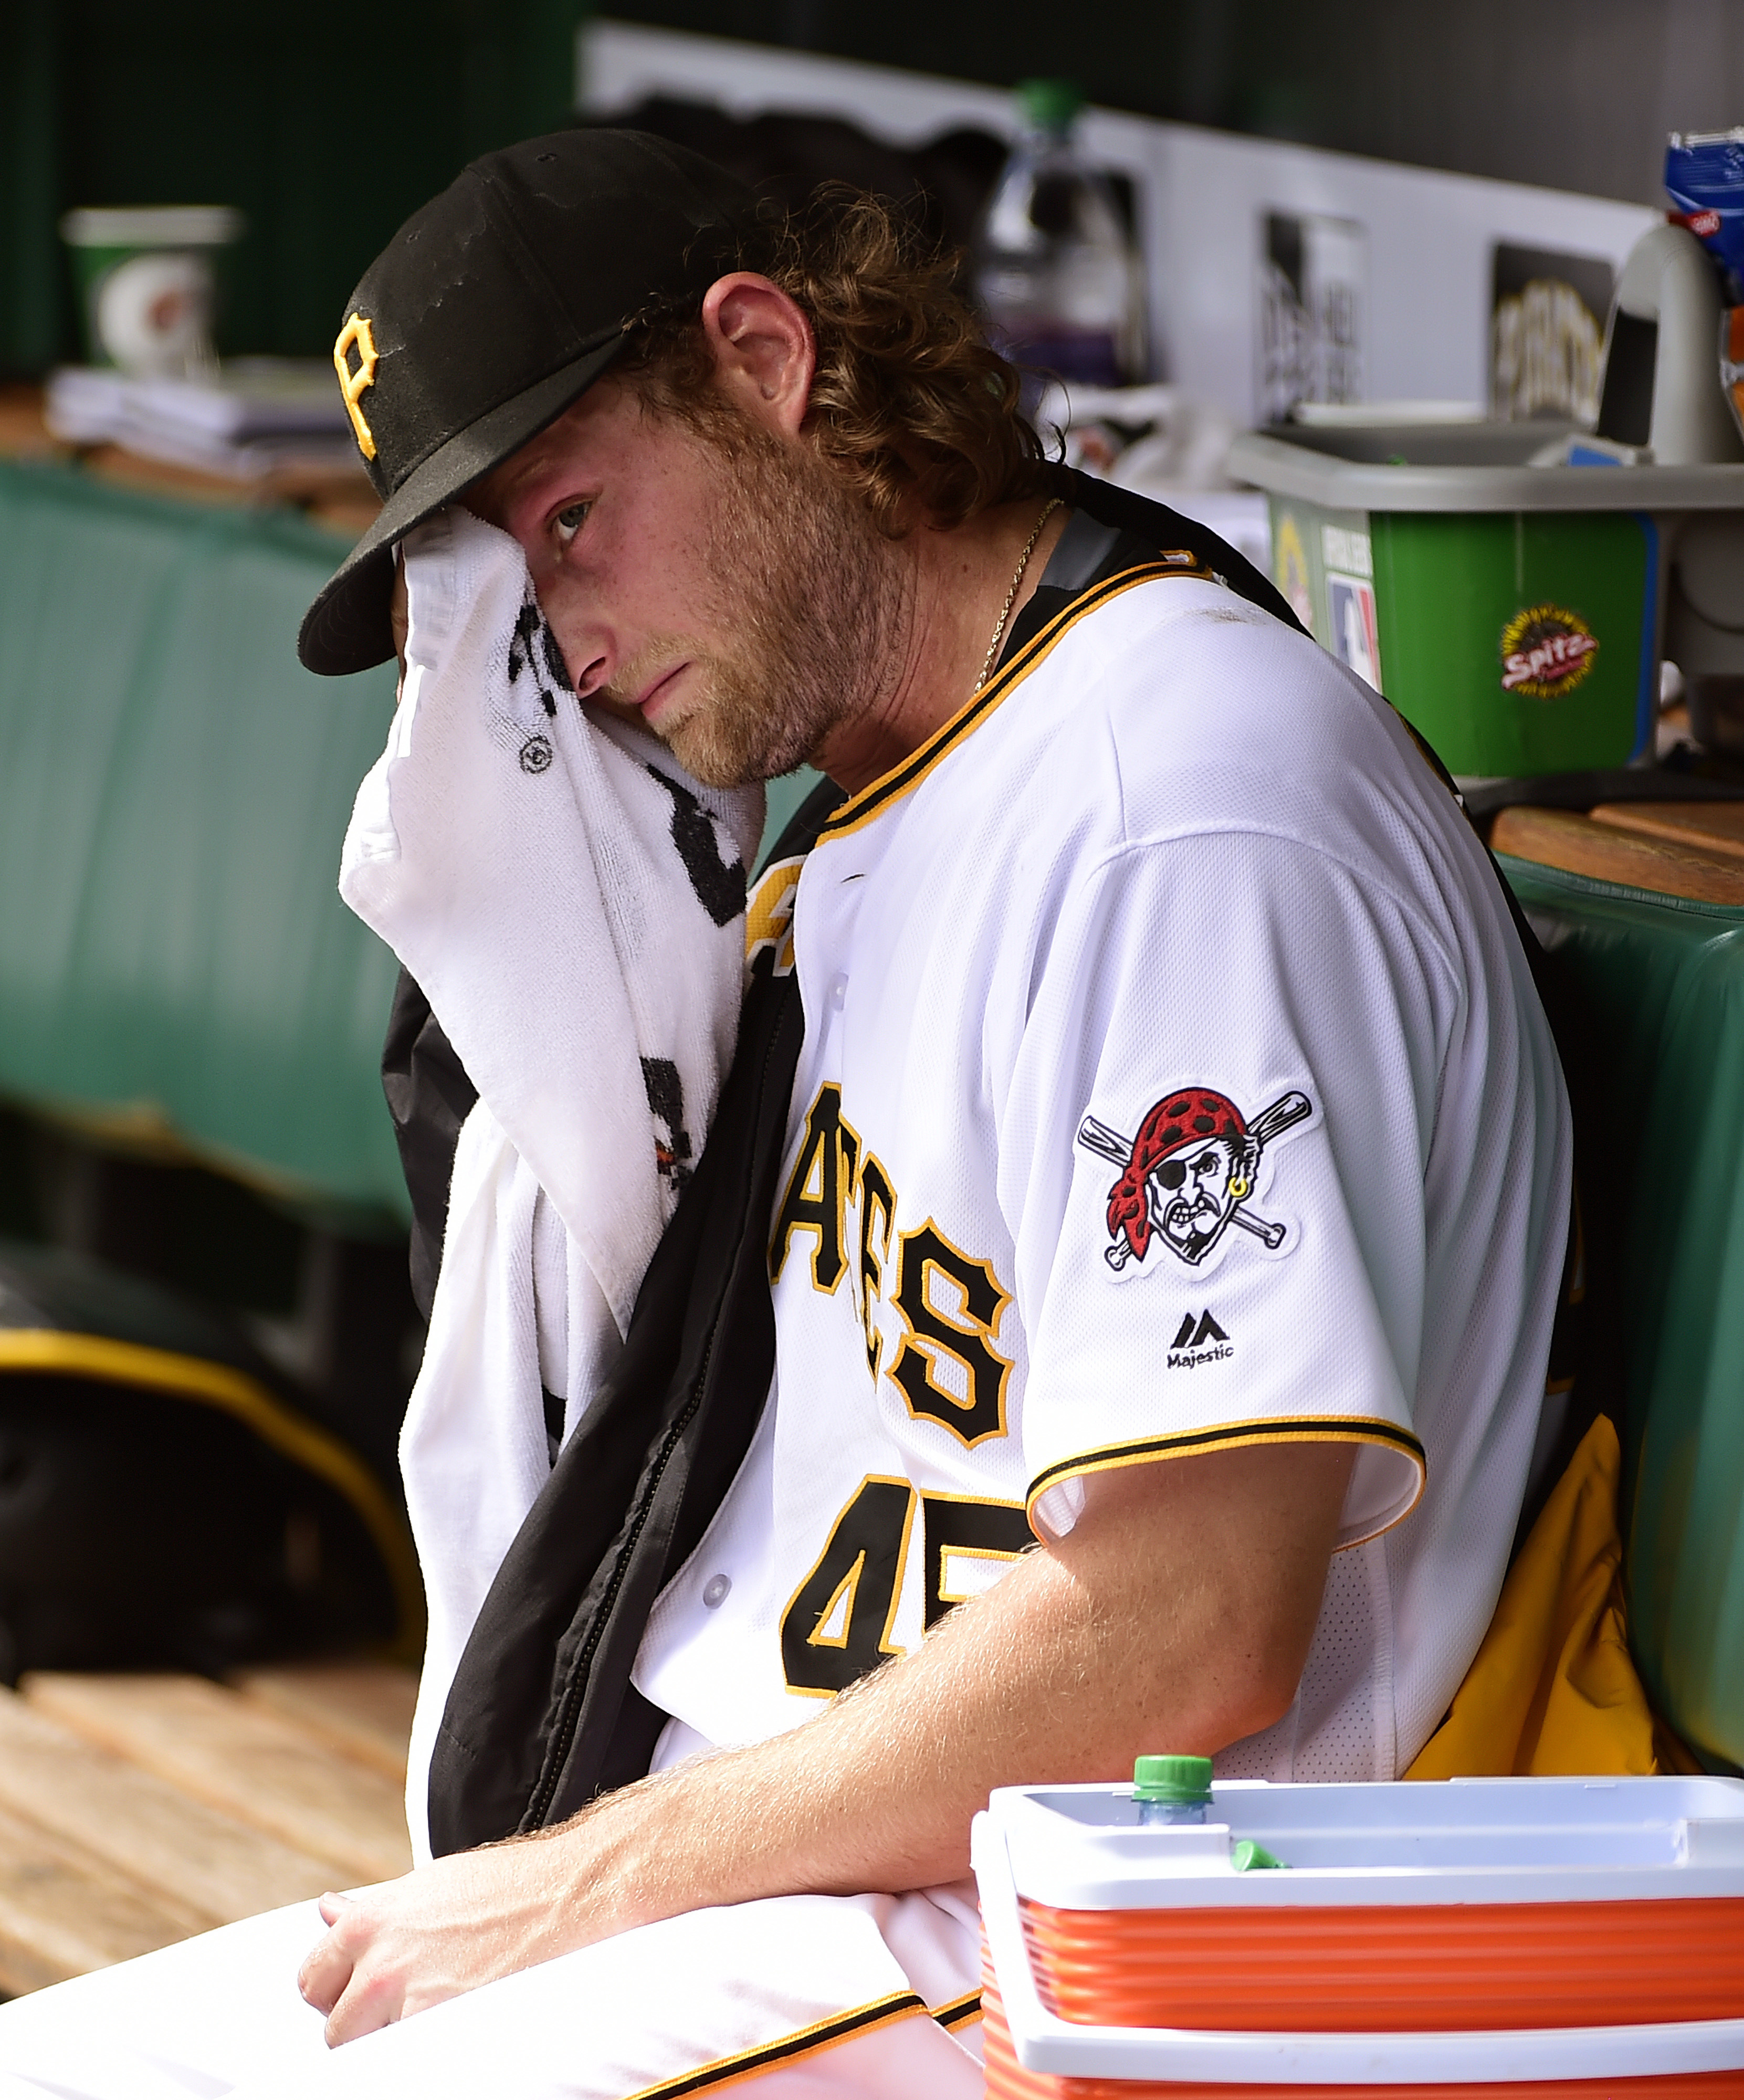 Pittsburgh Pirates' Gerrit Cole wipes his face in the dugout in the fourth inning of a baseball game against the Houston Astros in Pittsburgh, Wednesday, Aug. 24, 2016. (AP Photo/Fred Vuich)